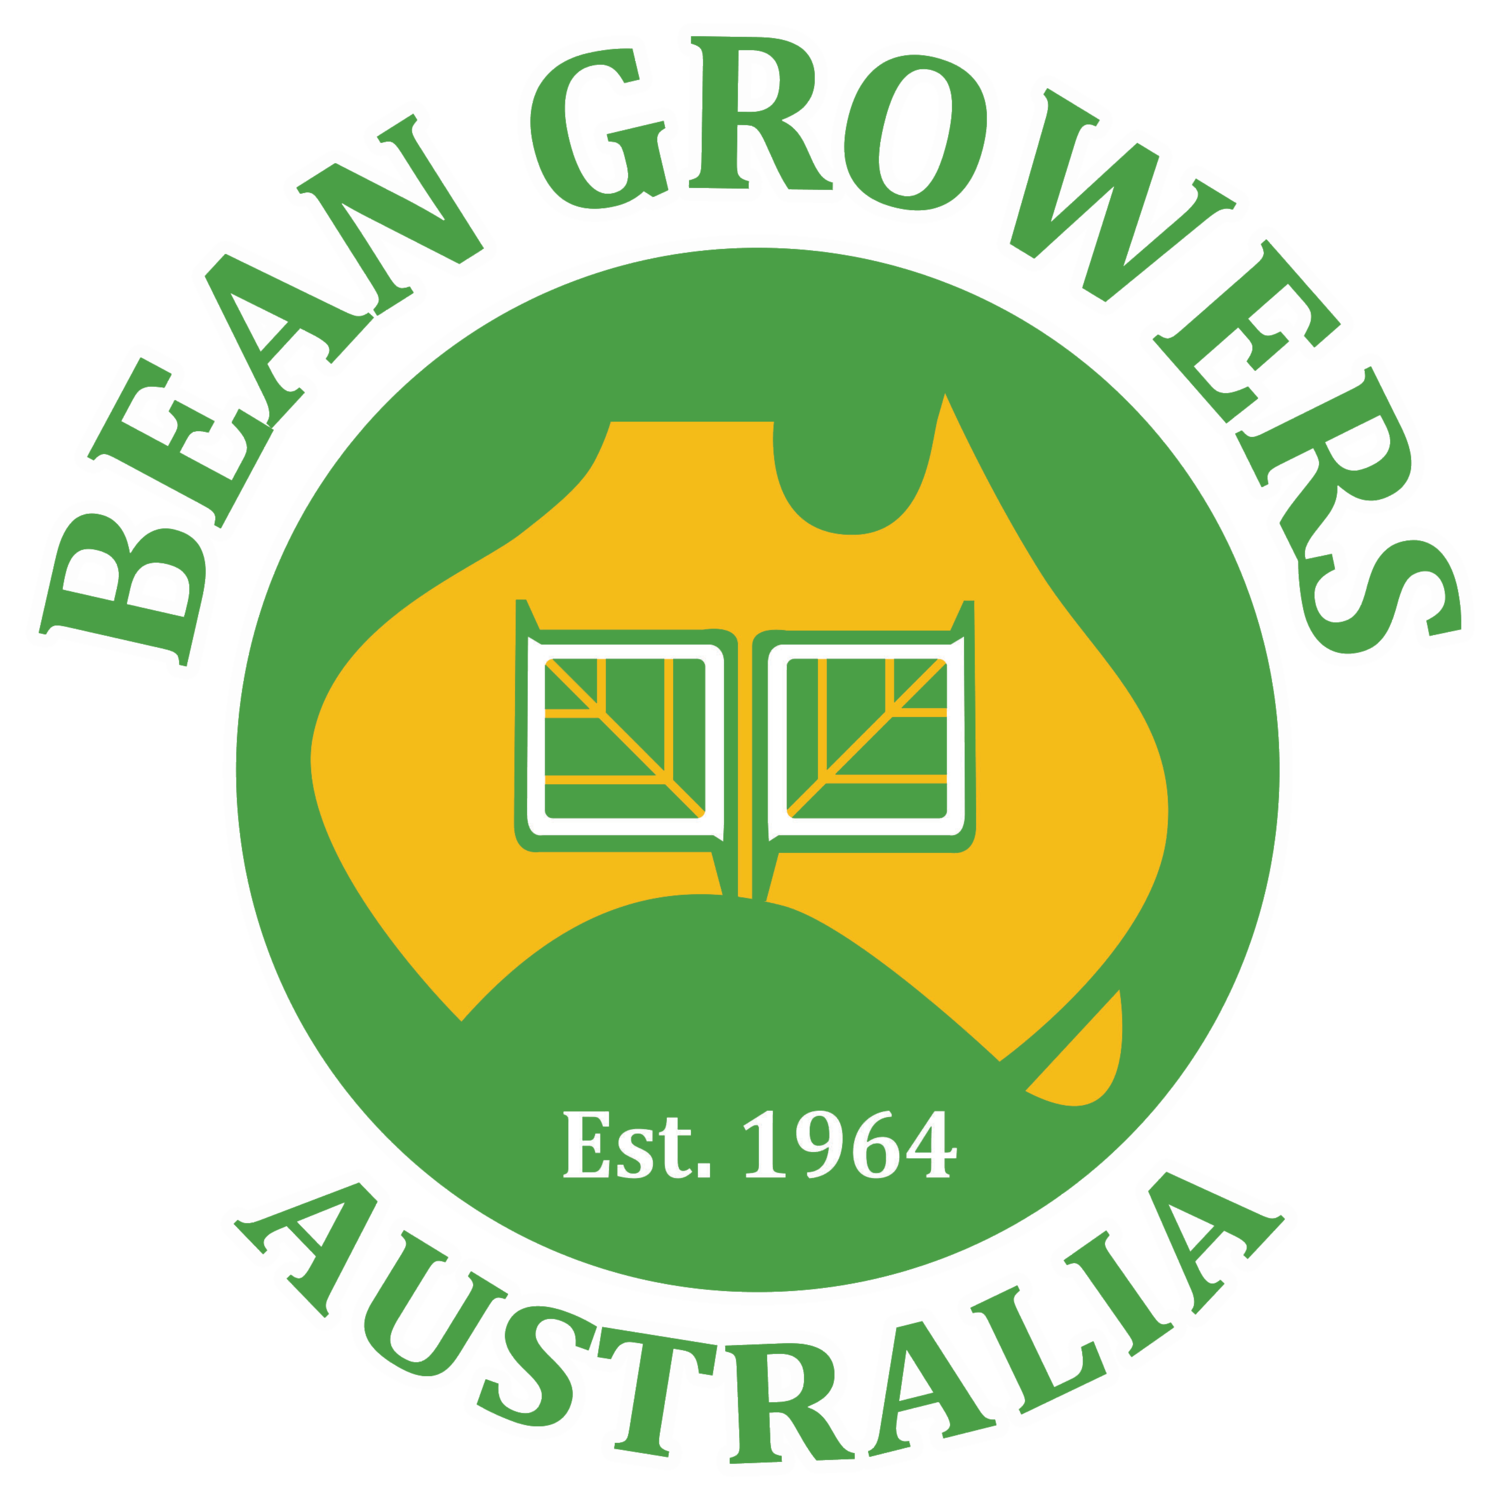 Bean Growers Australia